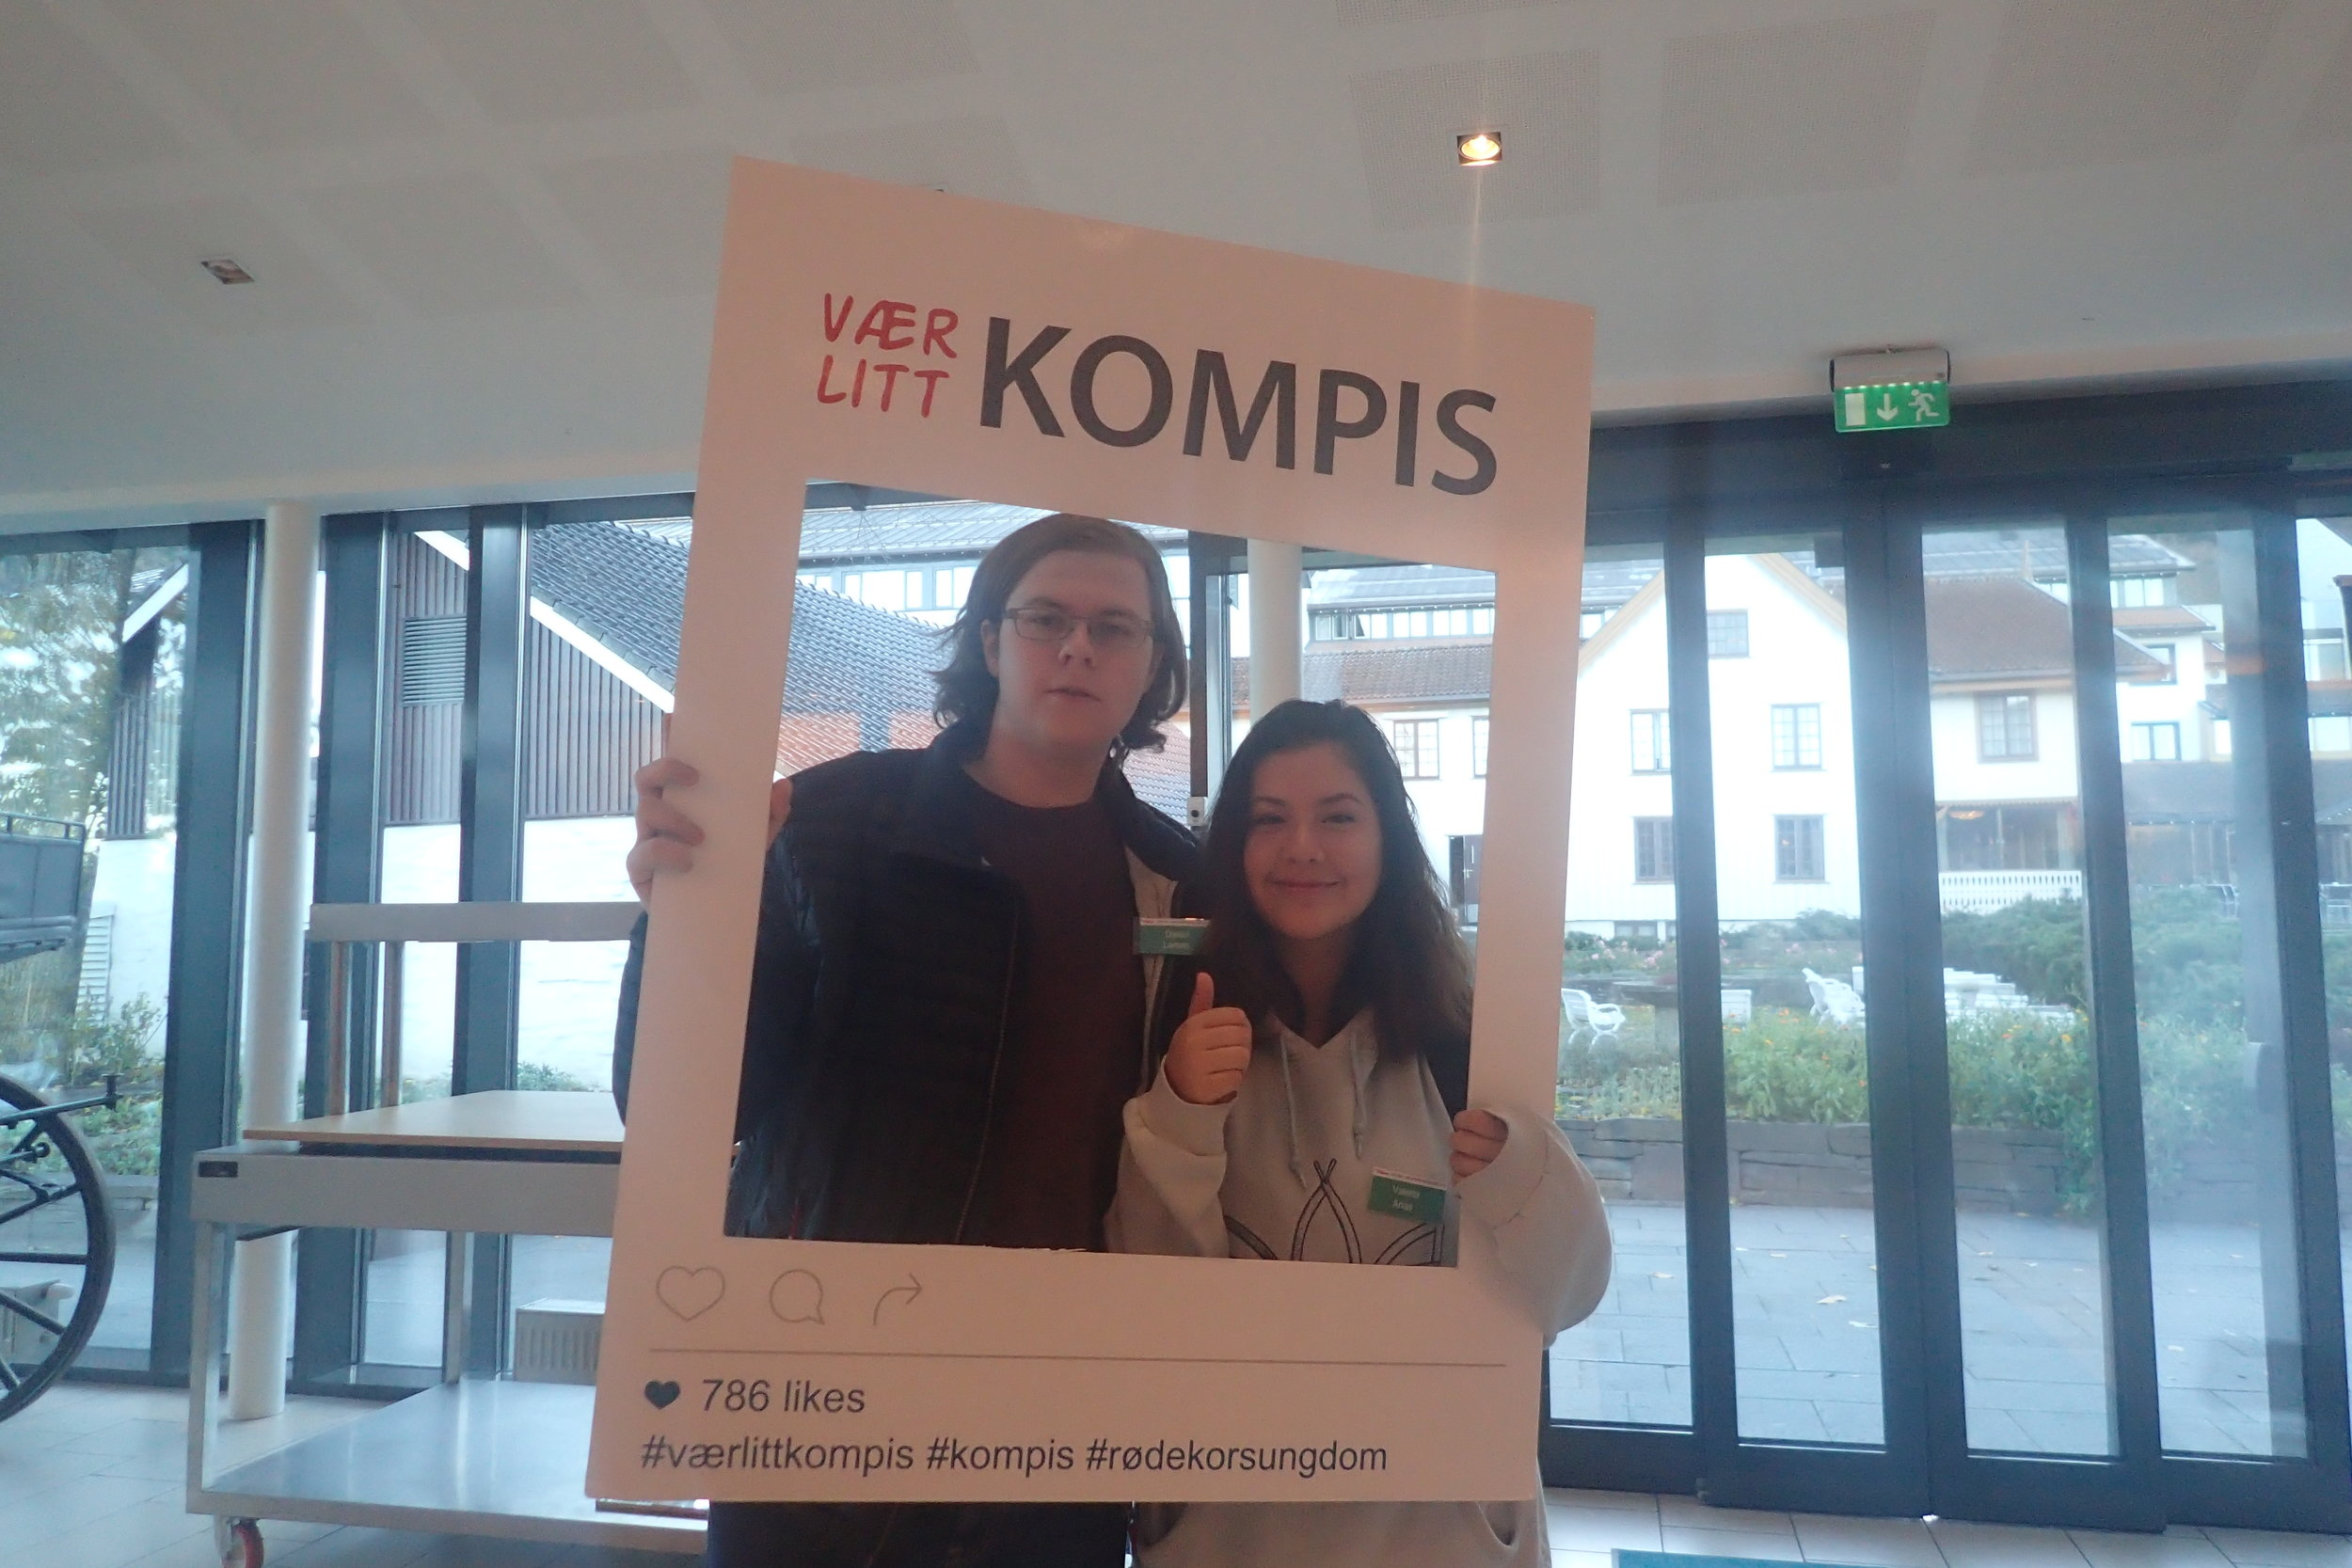 Værelitt Kompis, the youth campaign for the year 2016/17.